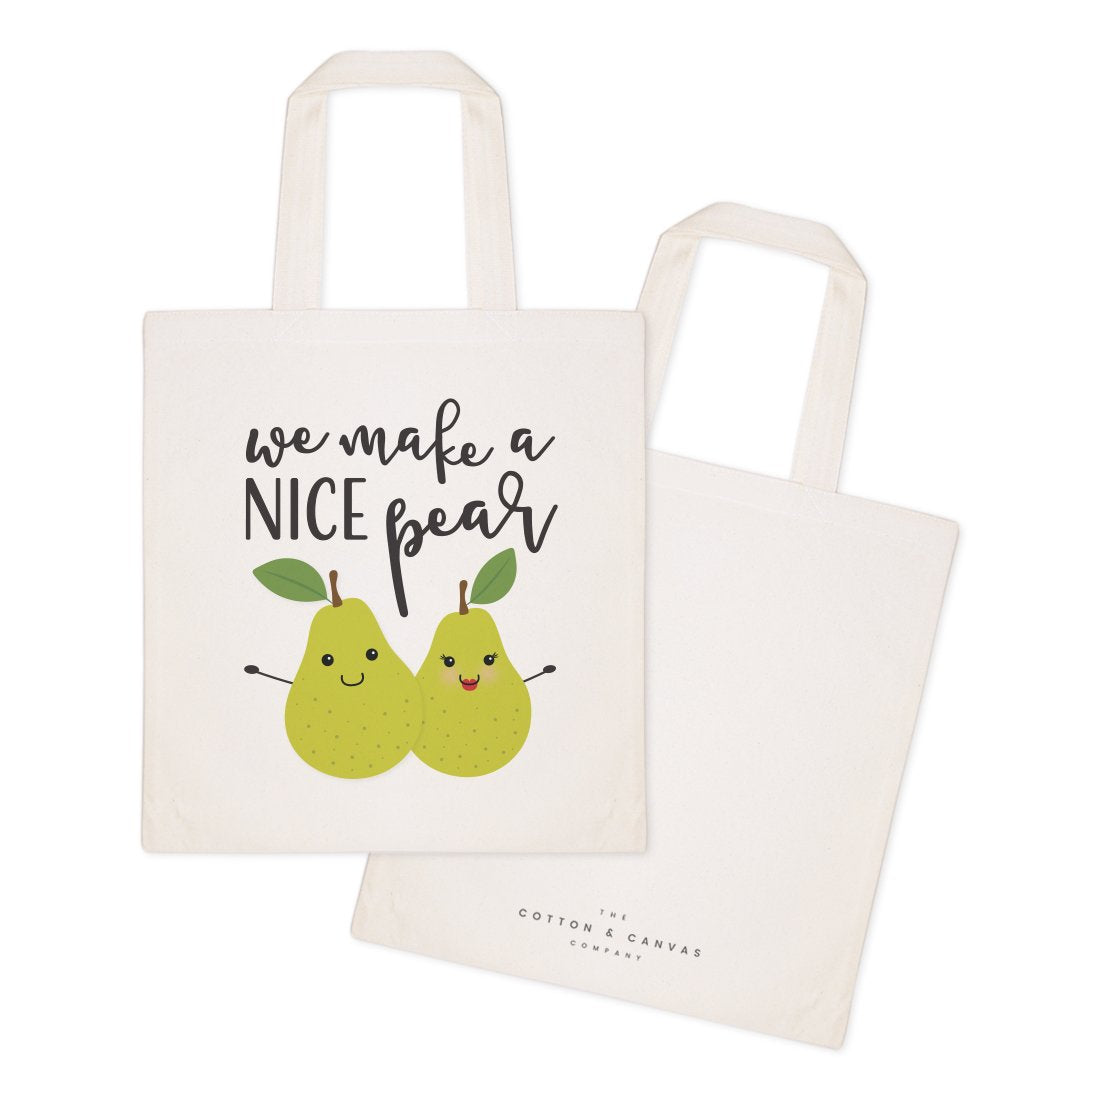 We Make A Nice Pear Cotton Canvas Tote Bag